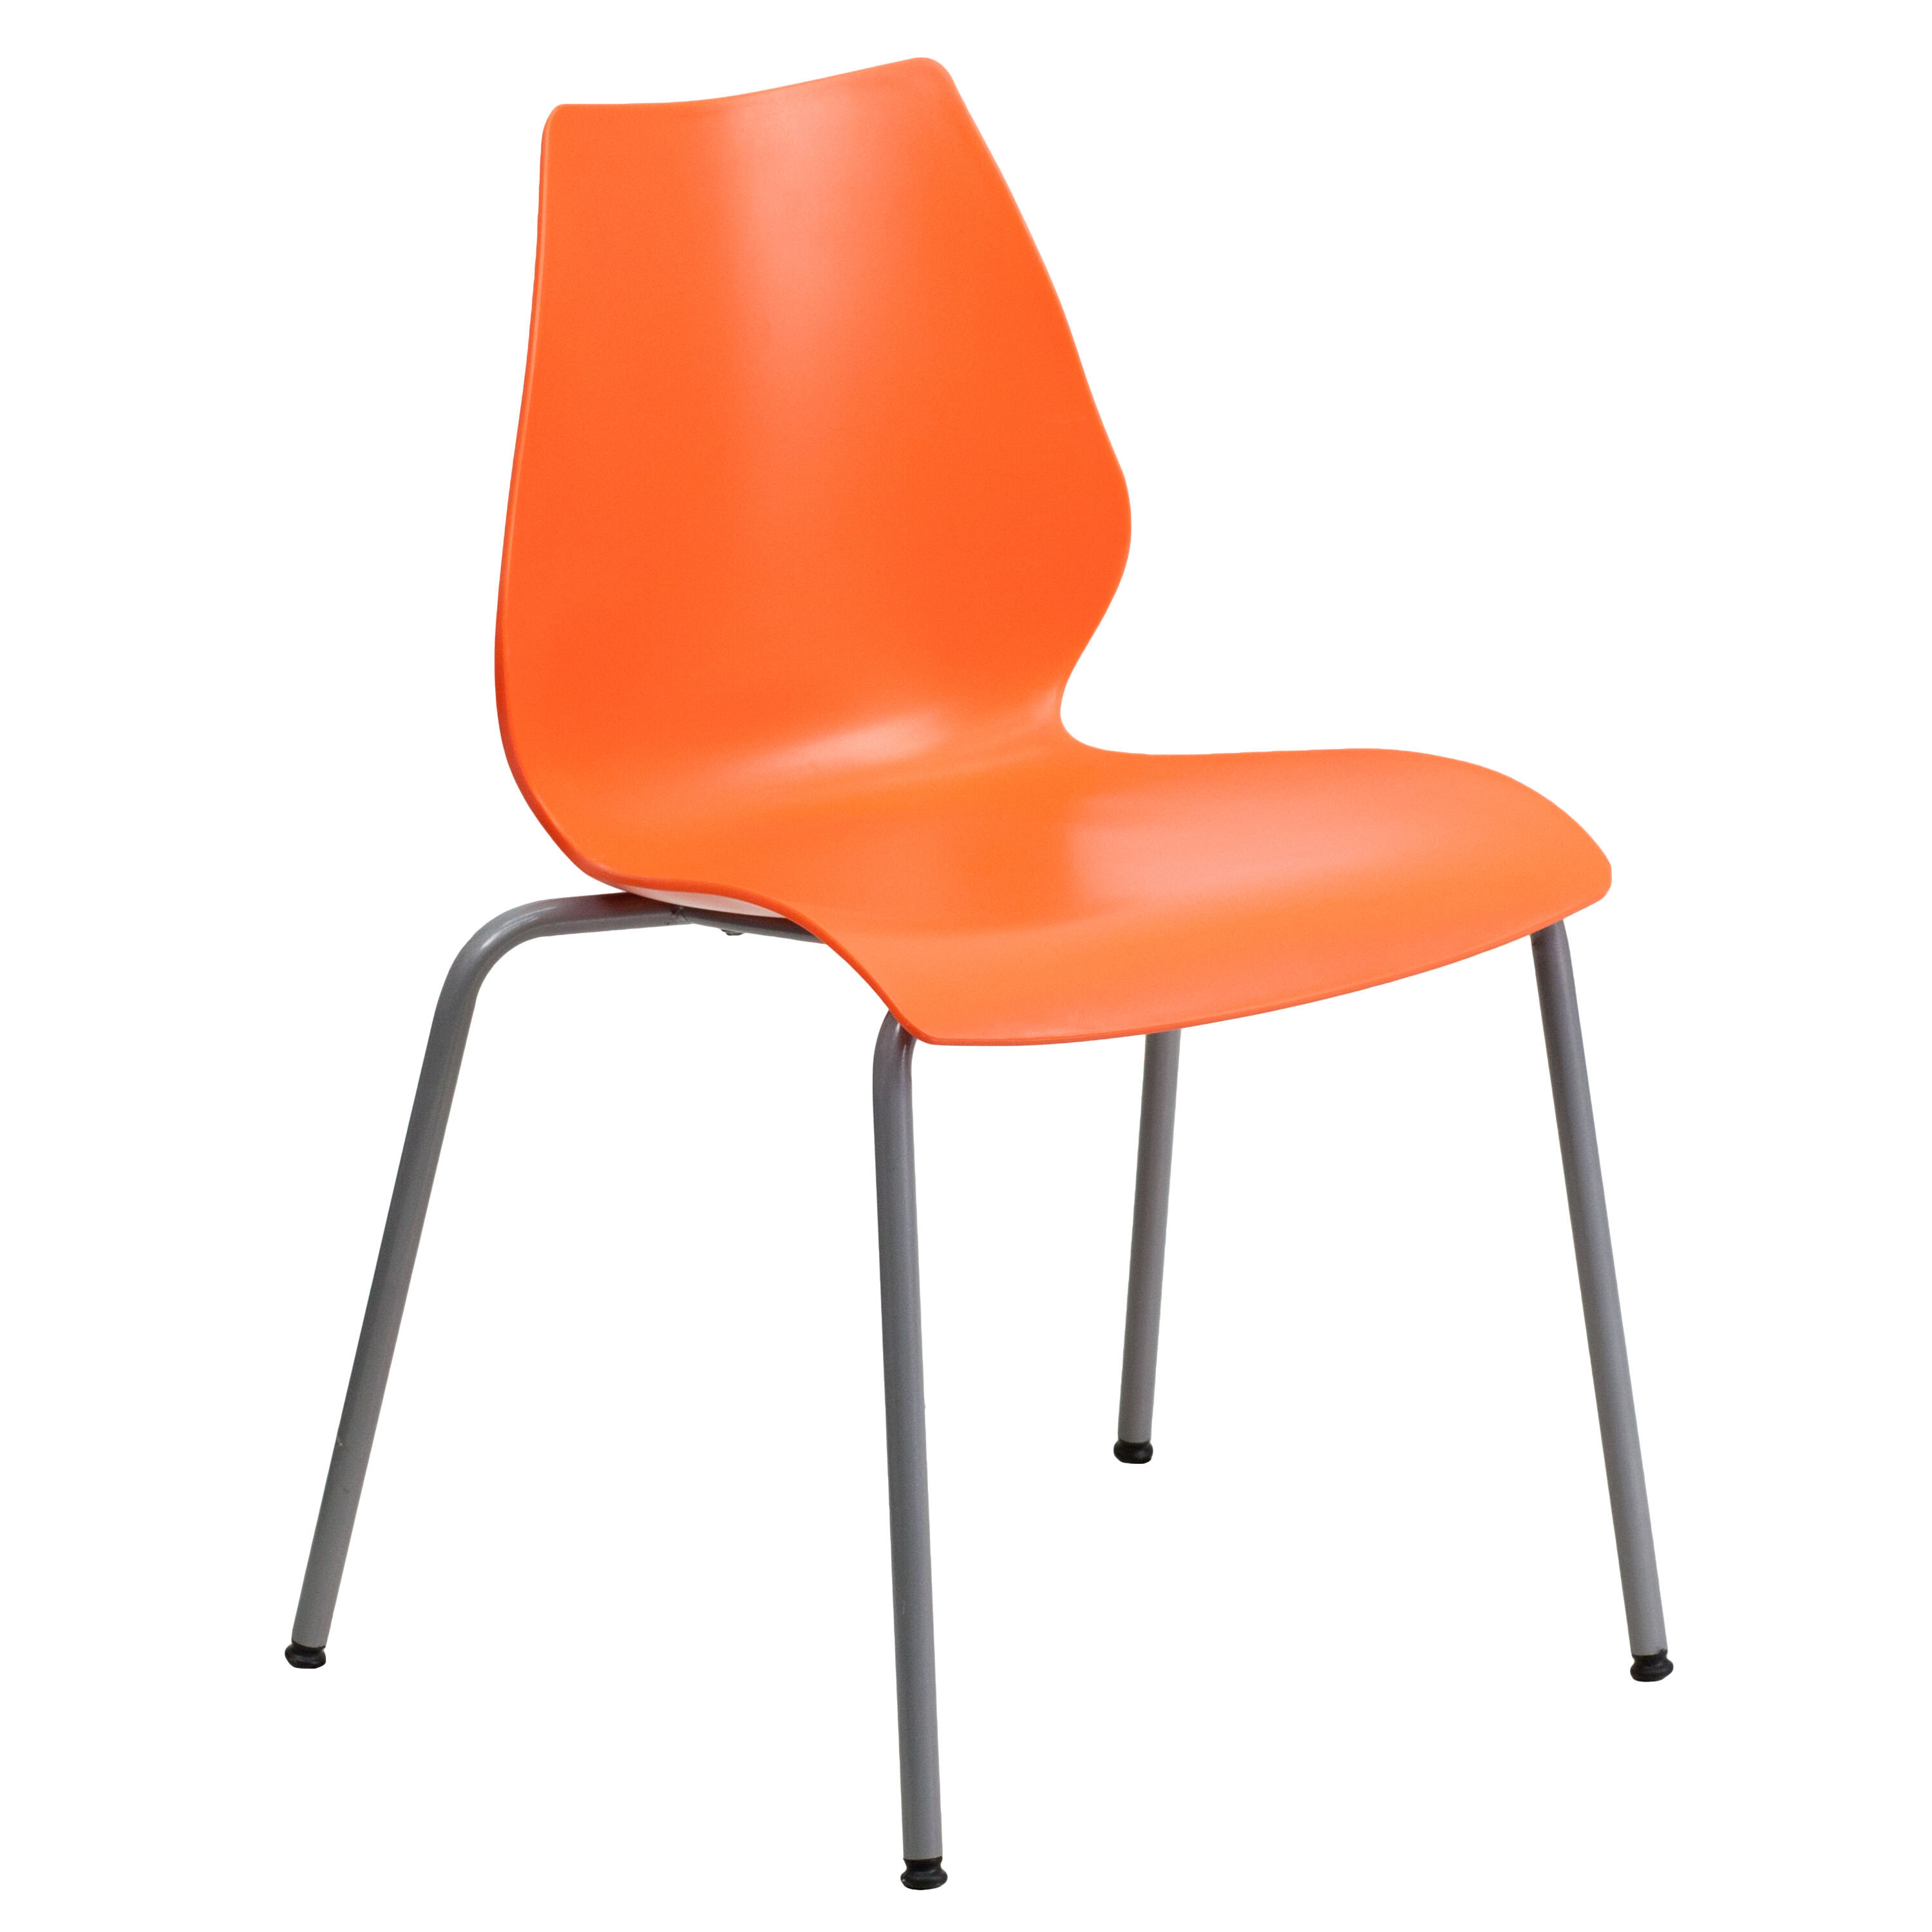 chairs 4 less paint for adirondack orange plastic stack chair rut 288 gg